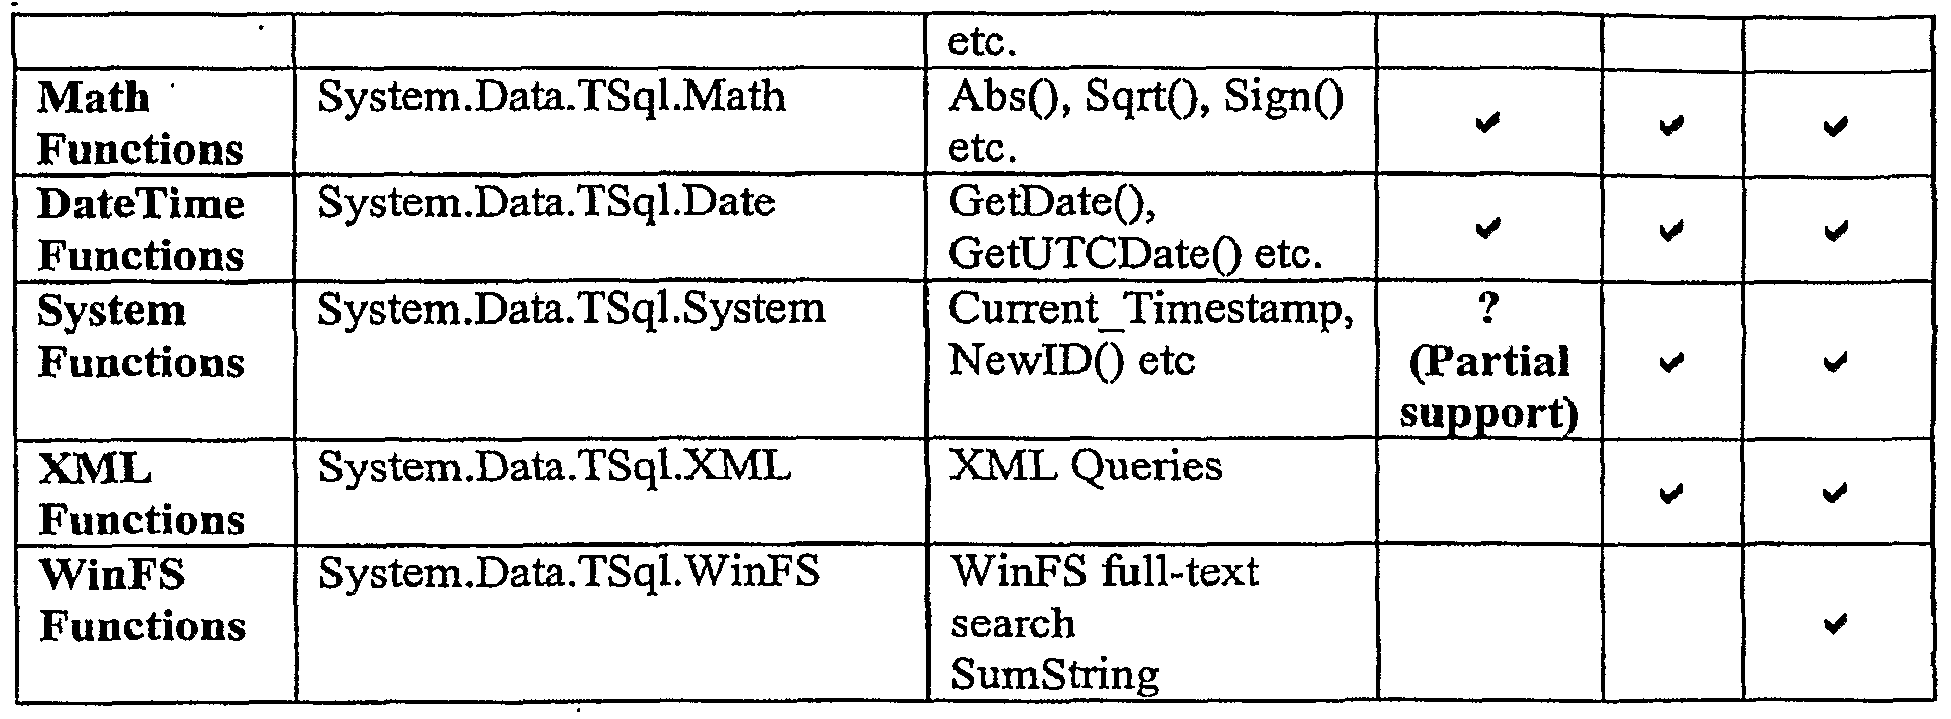 Funky Xml Math Collection - Math Worksheets - modopol.com